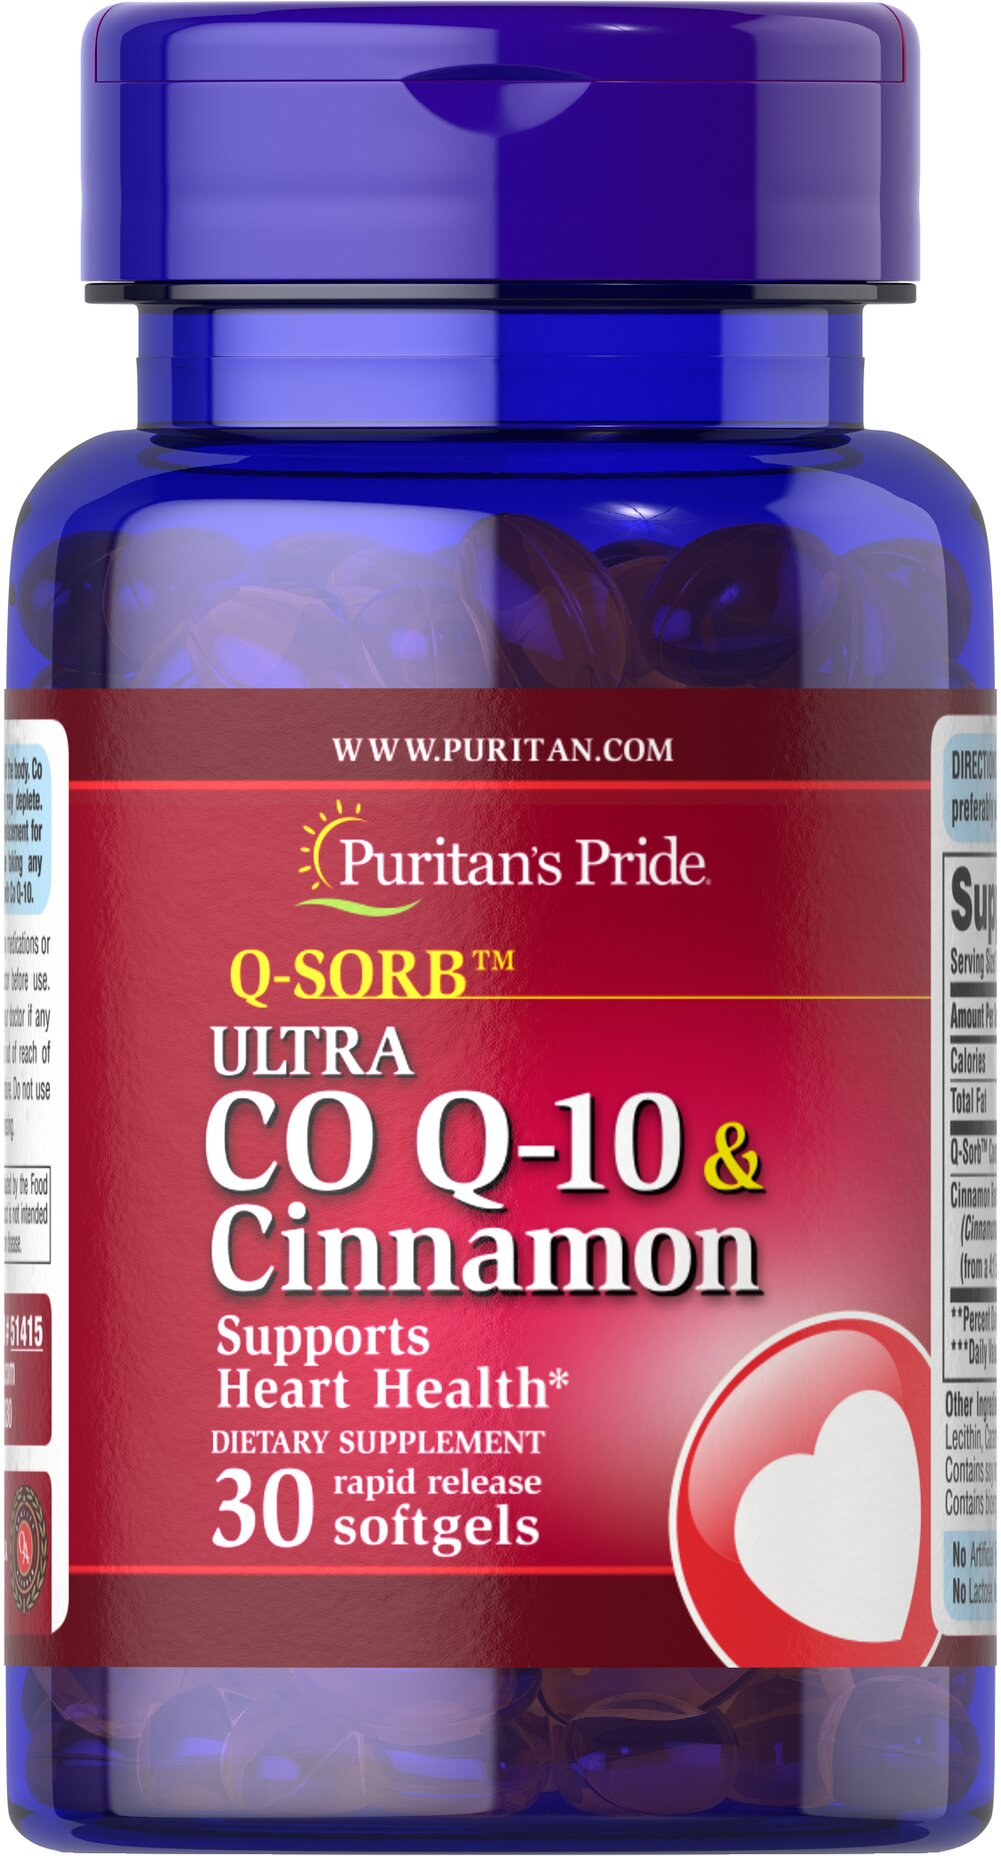 Co Q-10 & Cinnamon <p>What's better than two well-known ingredients for cardiovascular health in one advanced formula?** Cinnamon's positive effects on sugar metabolism can help support heart and circulatory health.** Co Q-10's capabilities contribute to a healthy heart and cardiovascular system.</p>  30 Rapid Release Softgels  $24.99